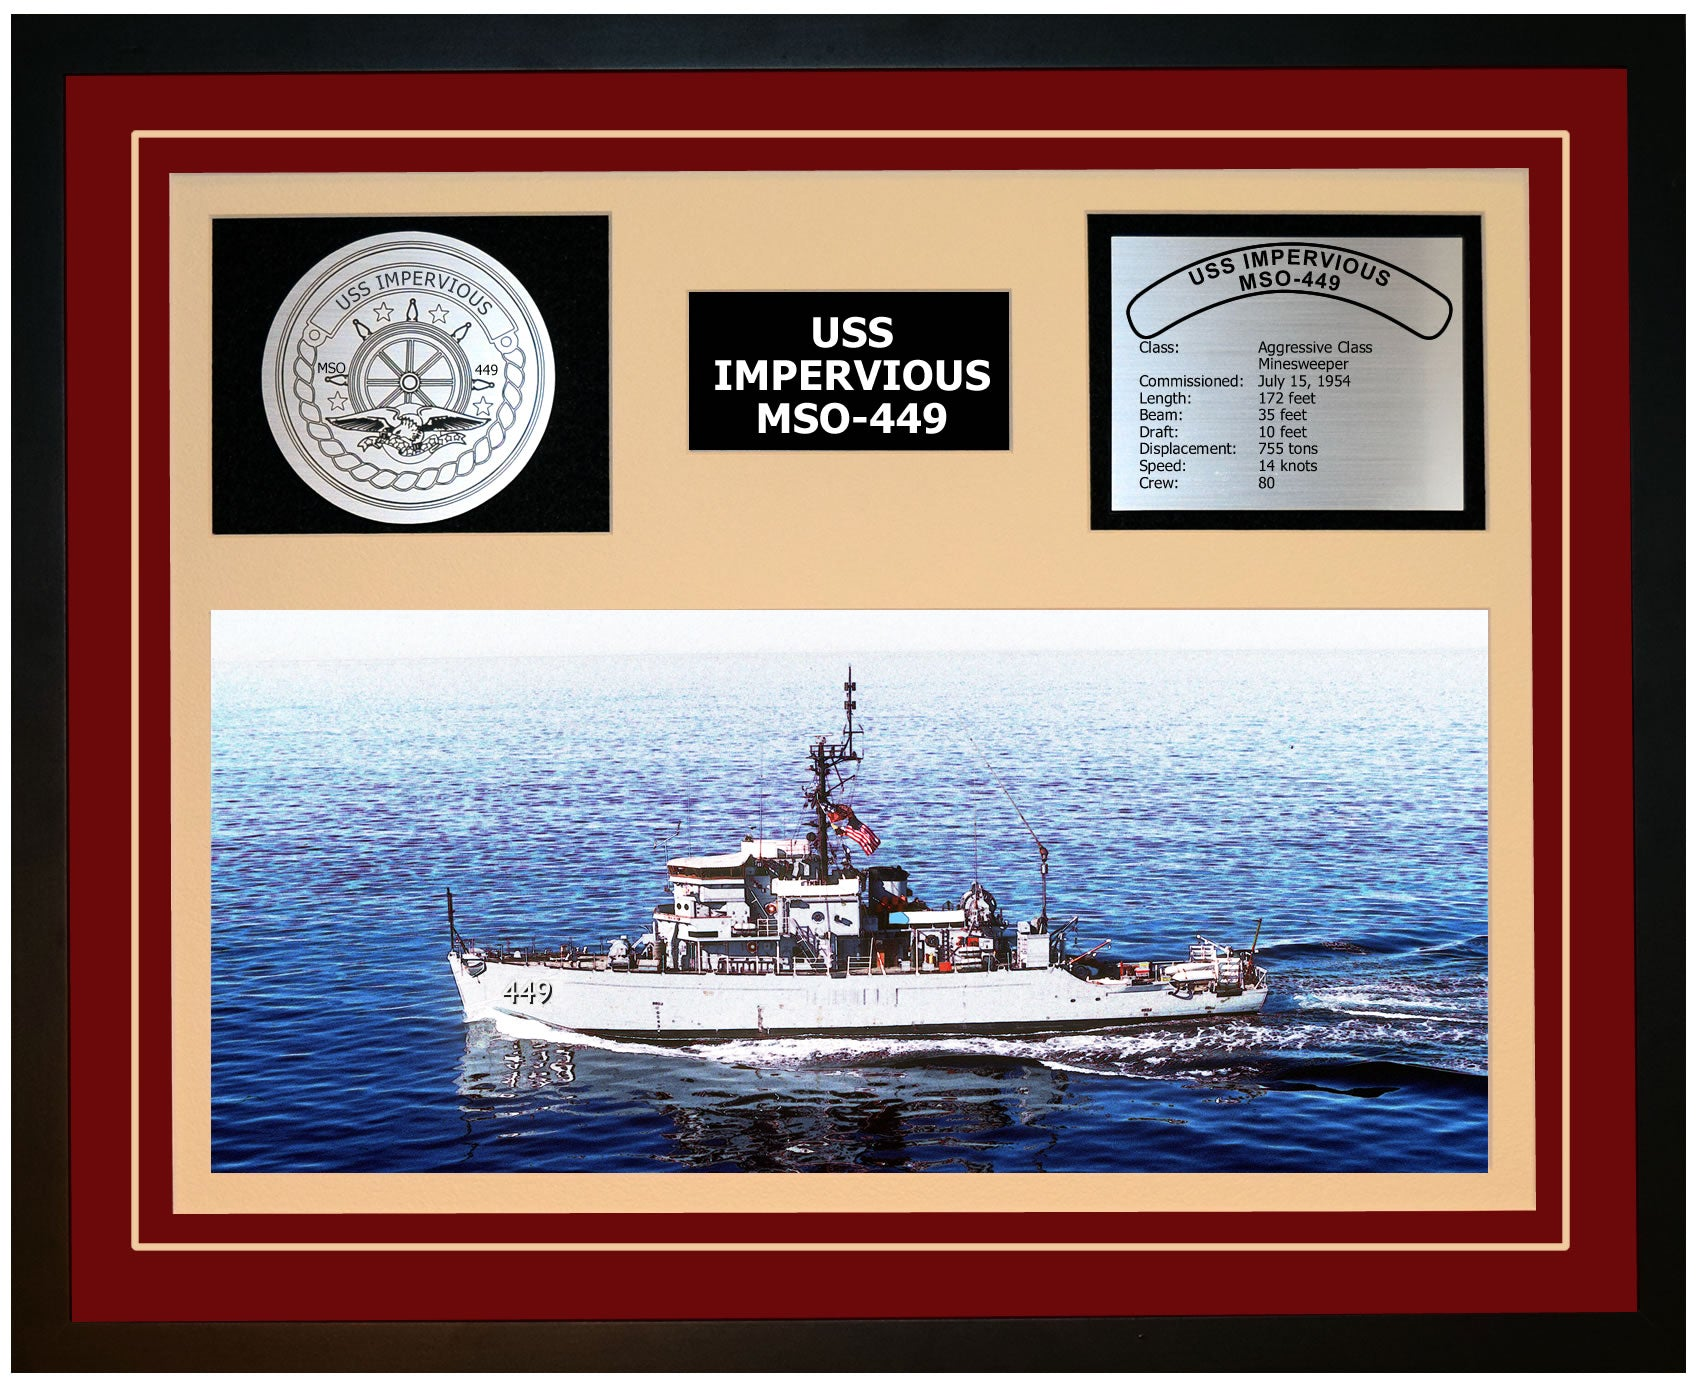 USS IMPERVIOUS MSO-449 Framed Navy Ship Display Burgundy